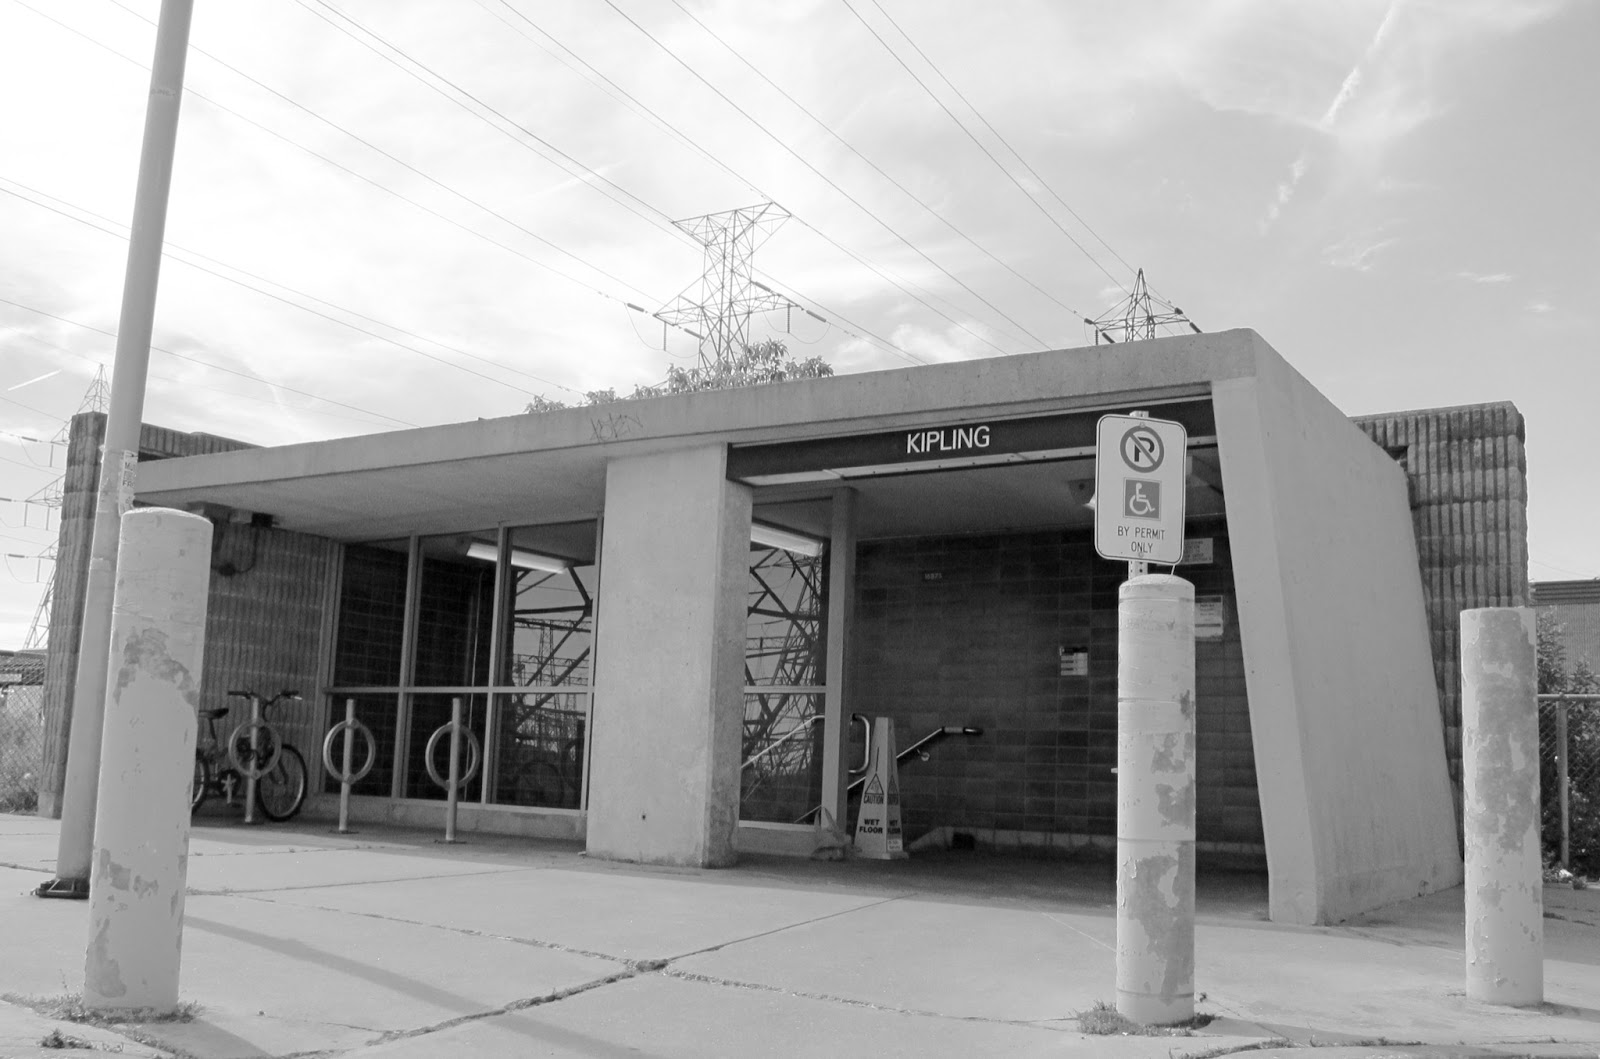 Photo: Kipling station south commuter lot entrance: a concrete bunker